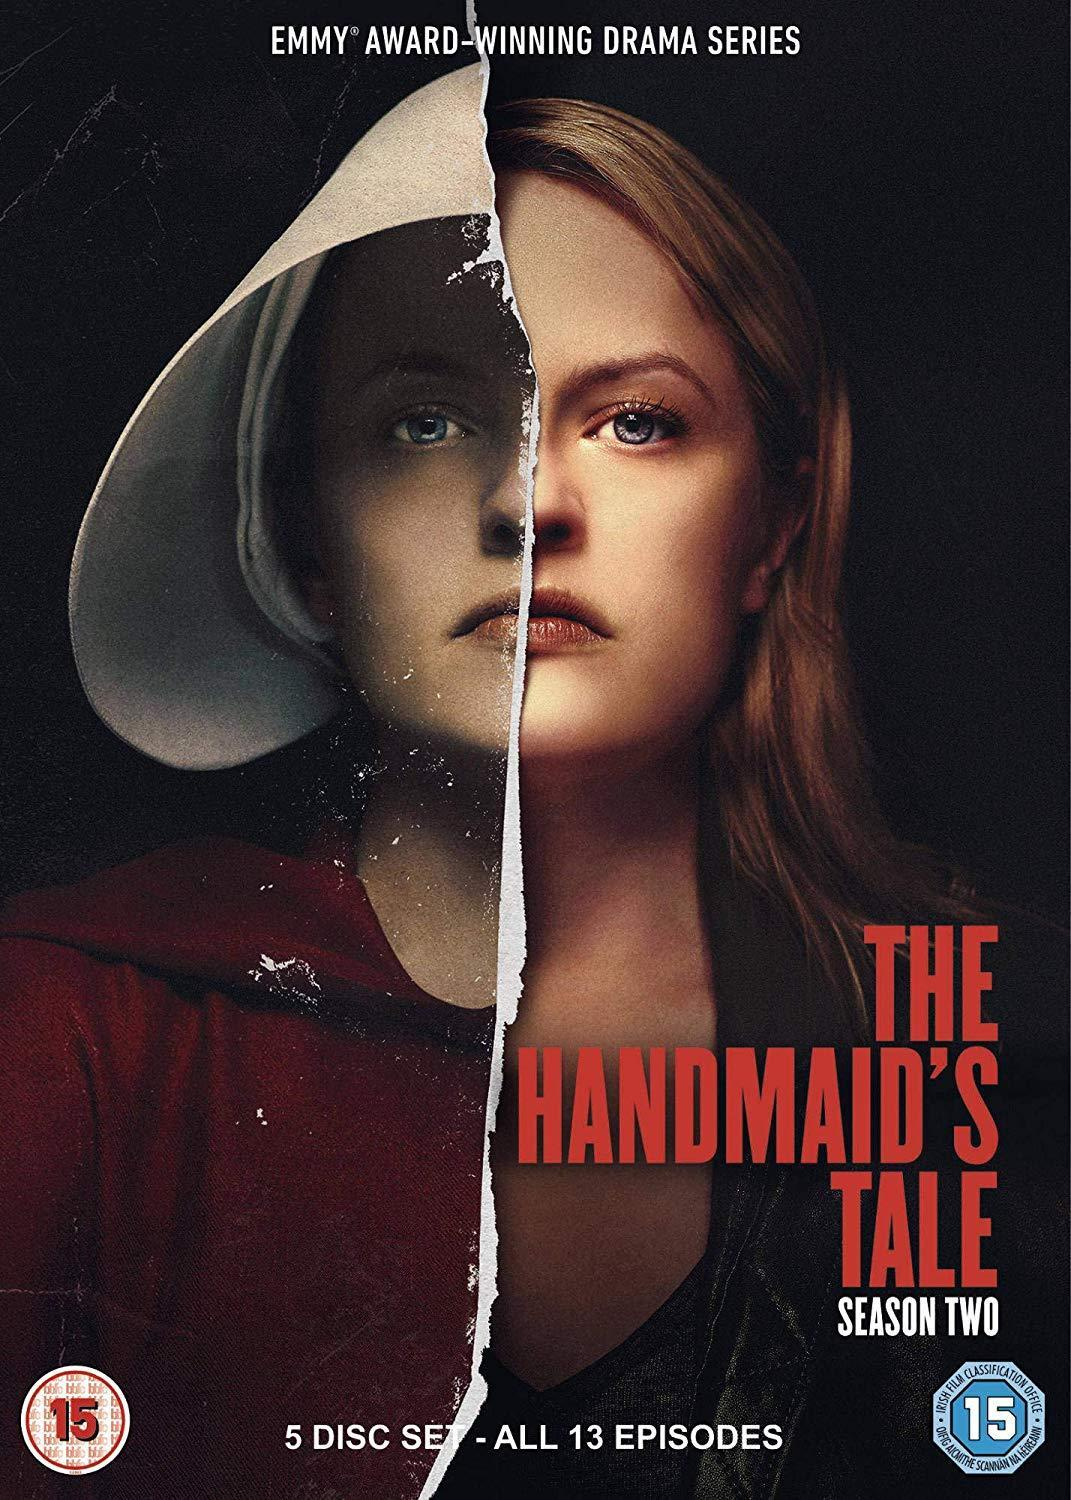 This week's DVDs picks: From The Handmaid's Tale to perversion in Orgies Of Edo